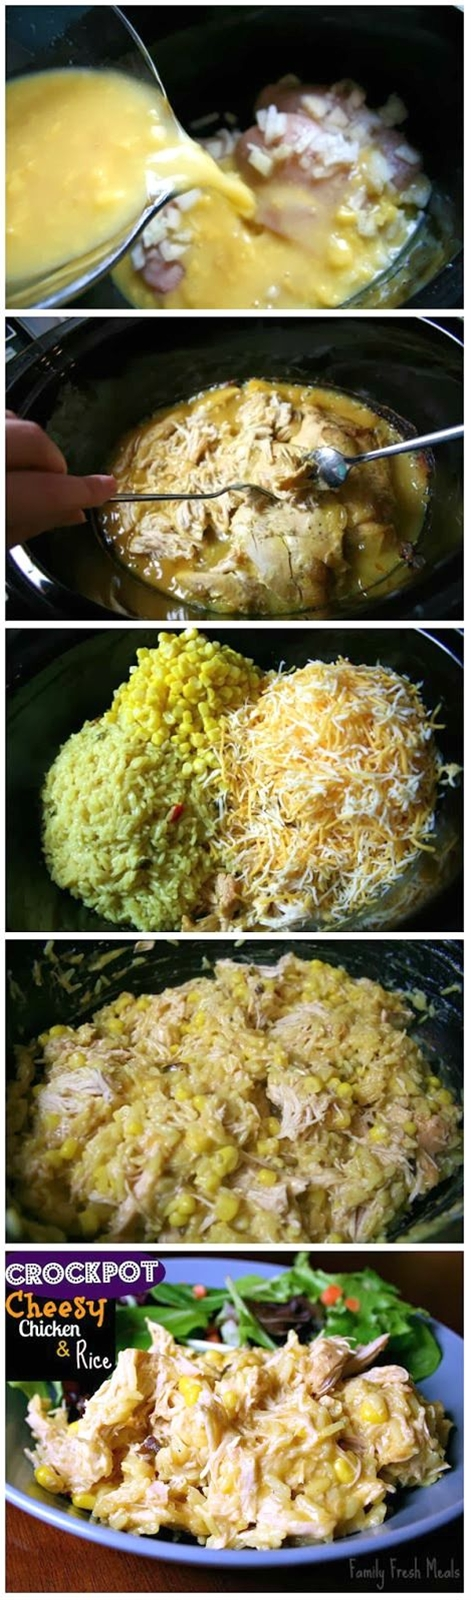 This slow cooker meal is a WINNER! Best dinner ever!\n\n Ingredients\n 1 (8oz) box Zatarain's Yellow Rice, cooked according to package.\n 4 boneless skinless chicken breasts\n 2 cups shredded cheddar cheese, or cheese blend\n 1 medium onion, chopped\n 1 (10.5oz) can cream of chicken soup (I used the healthy choice reduced fat and sodium)\n 1 (15oz) can of corn, drained\n 2 cups chicken stock